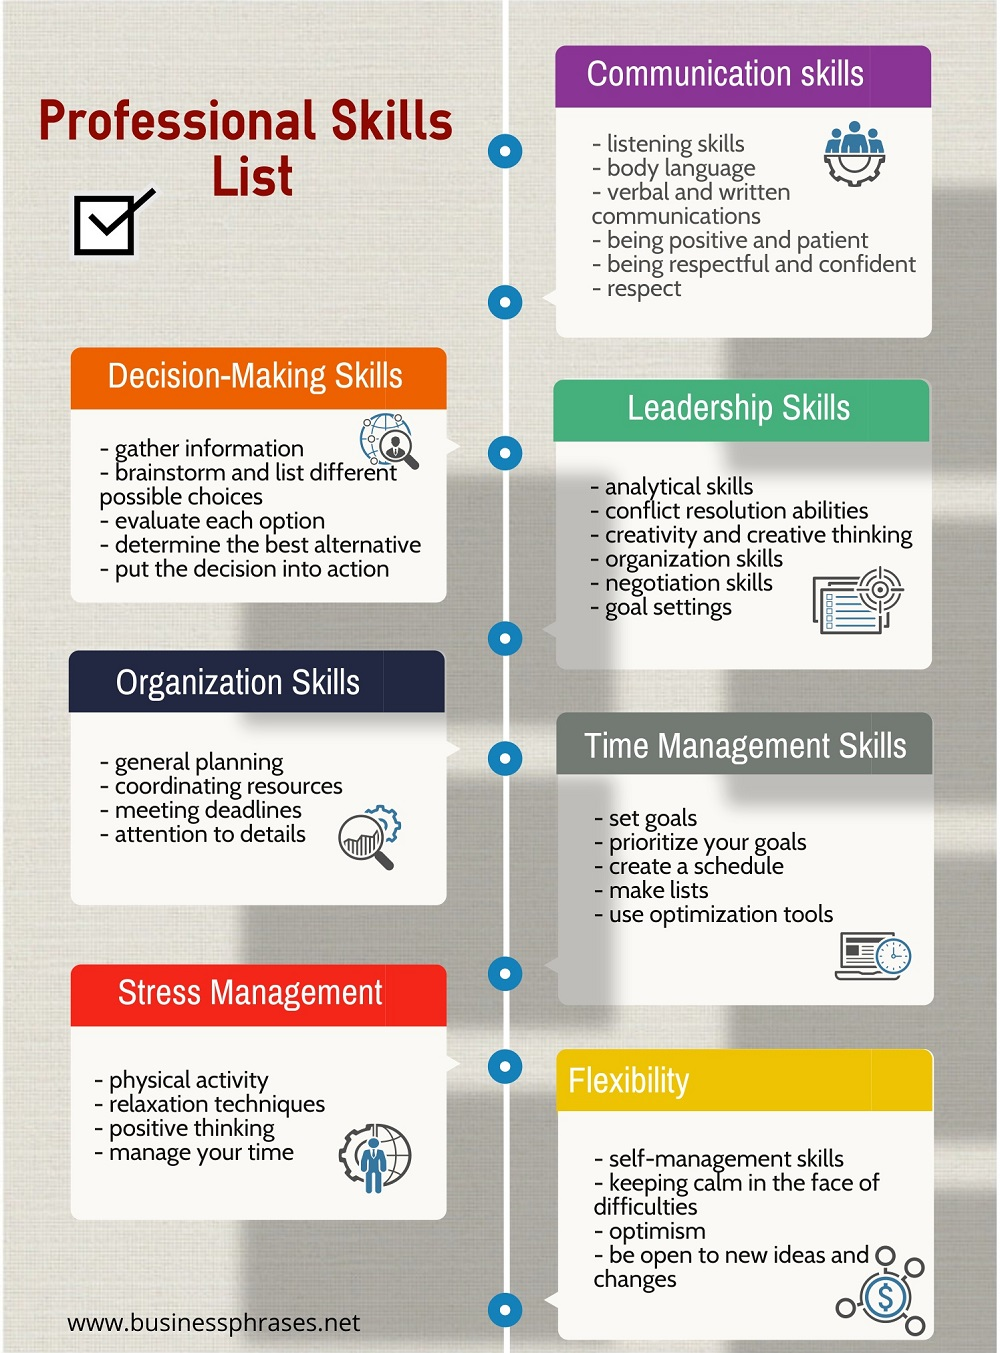 professional skills list visual ly